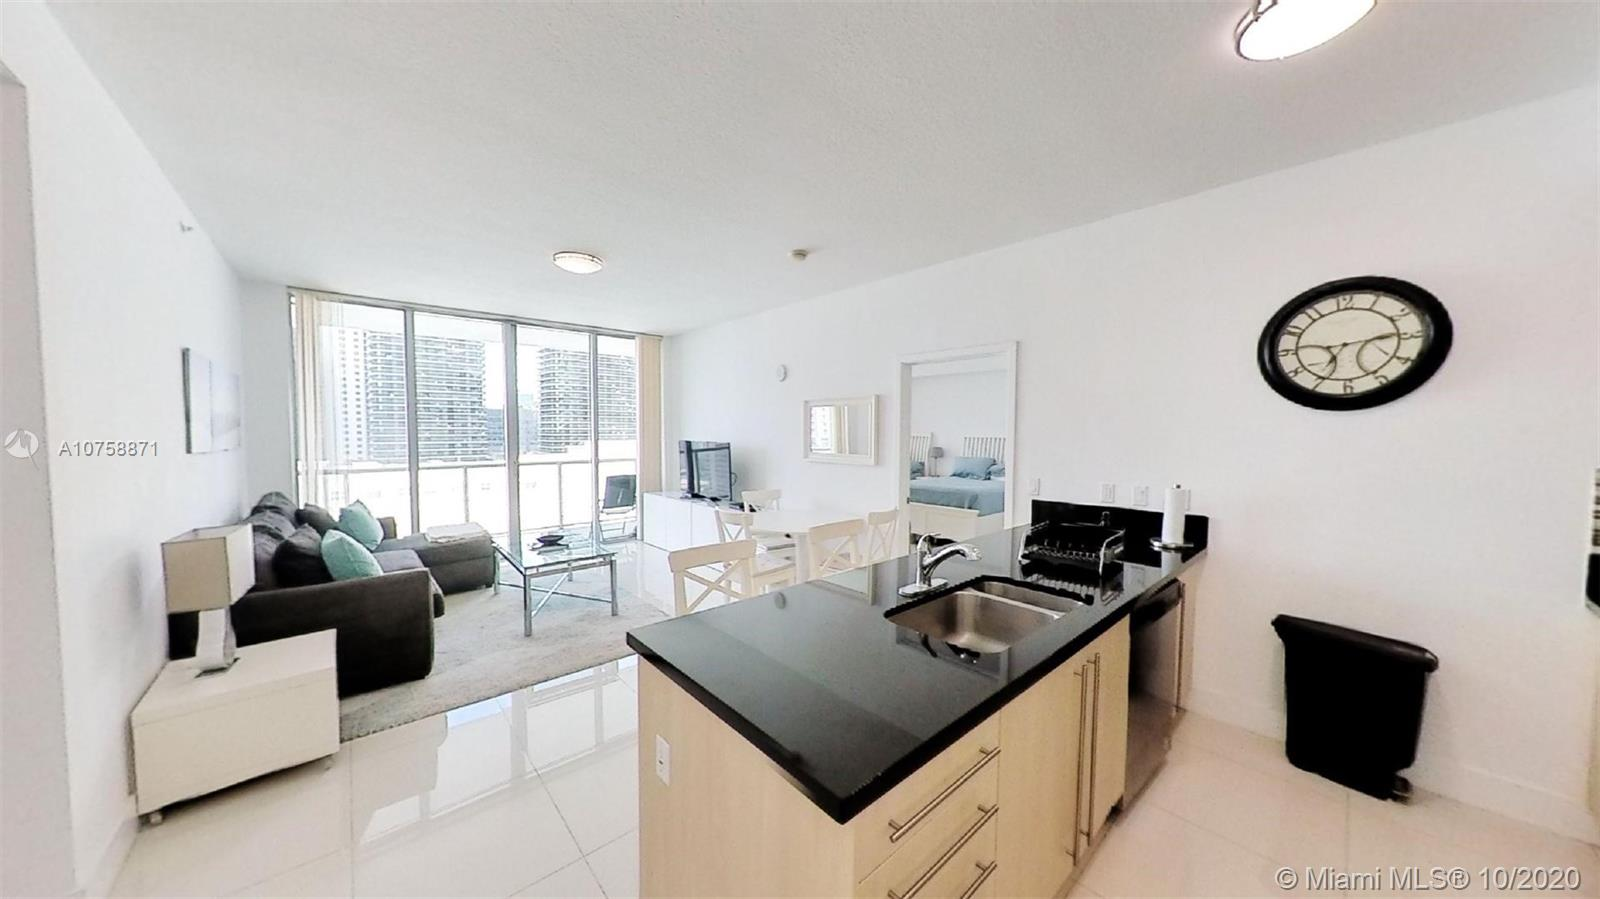 Axis on Brickell North Tower #1923 - 1111 SW 1st Ave #1923, Miami, FL 33130